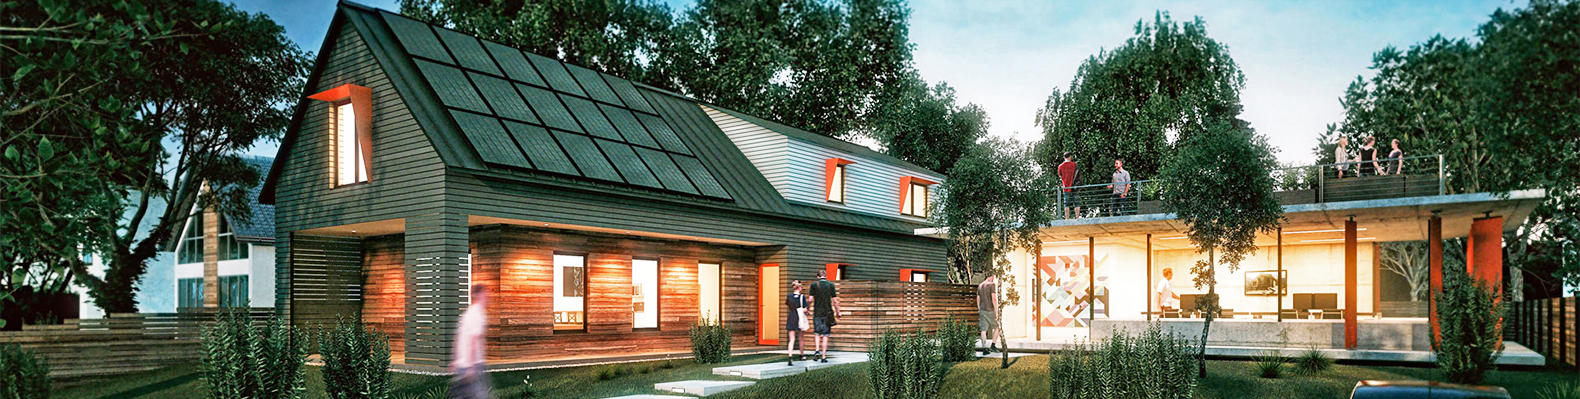 Could Acre Designs' venture-backed net zero energy houses ... on leadership in energy and environmental design, lighting home design, zero waste design, northwest home design, classic home design, energy efficient design, habitat for humanity home design, ecological home design, innovative home design, sustainable home design, self-sustaining home design, 2d home design, netzero home design, design home design, passive solar building design, architecture home design, passive cooling home design, hardened home design, green home design, construction home design,